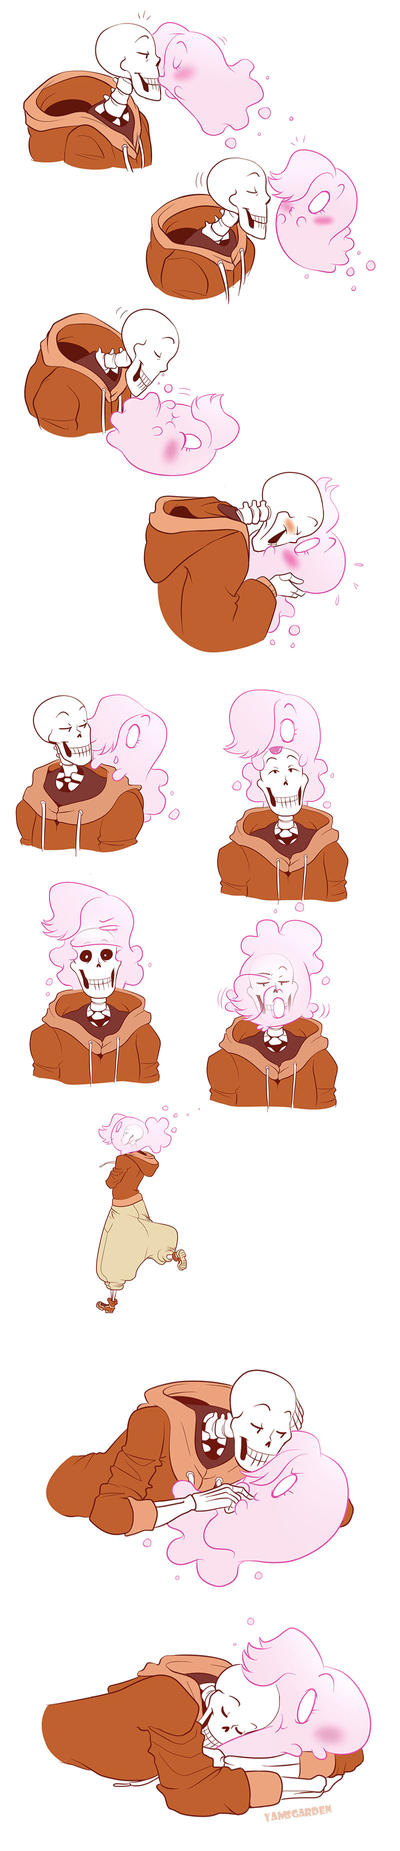 Papyton Doodles 4 by YAMsgarden